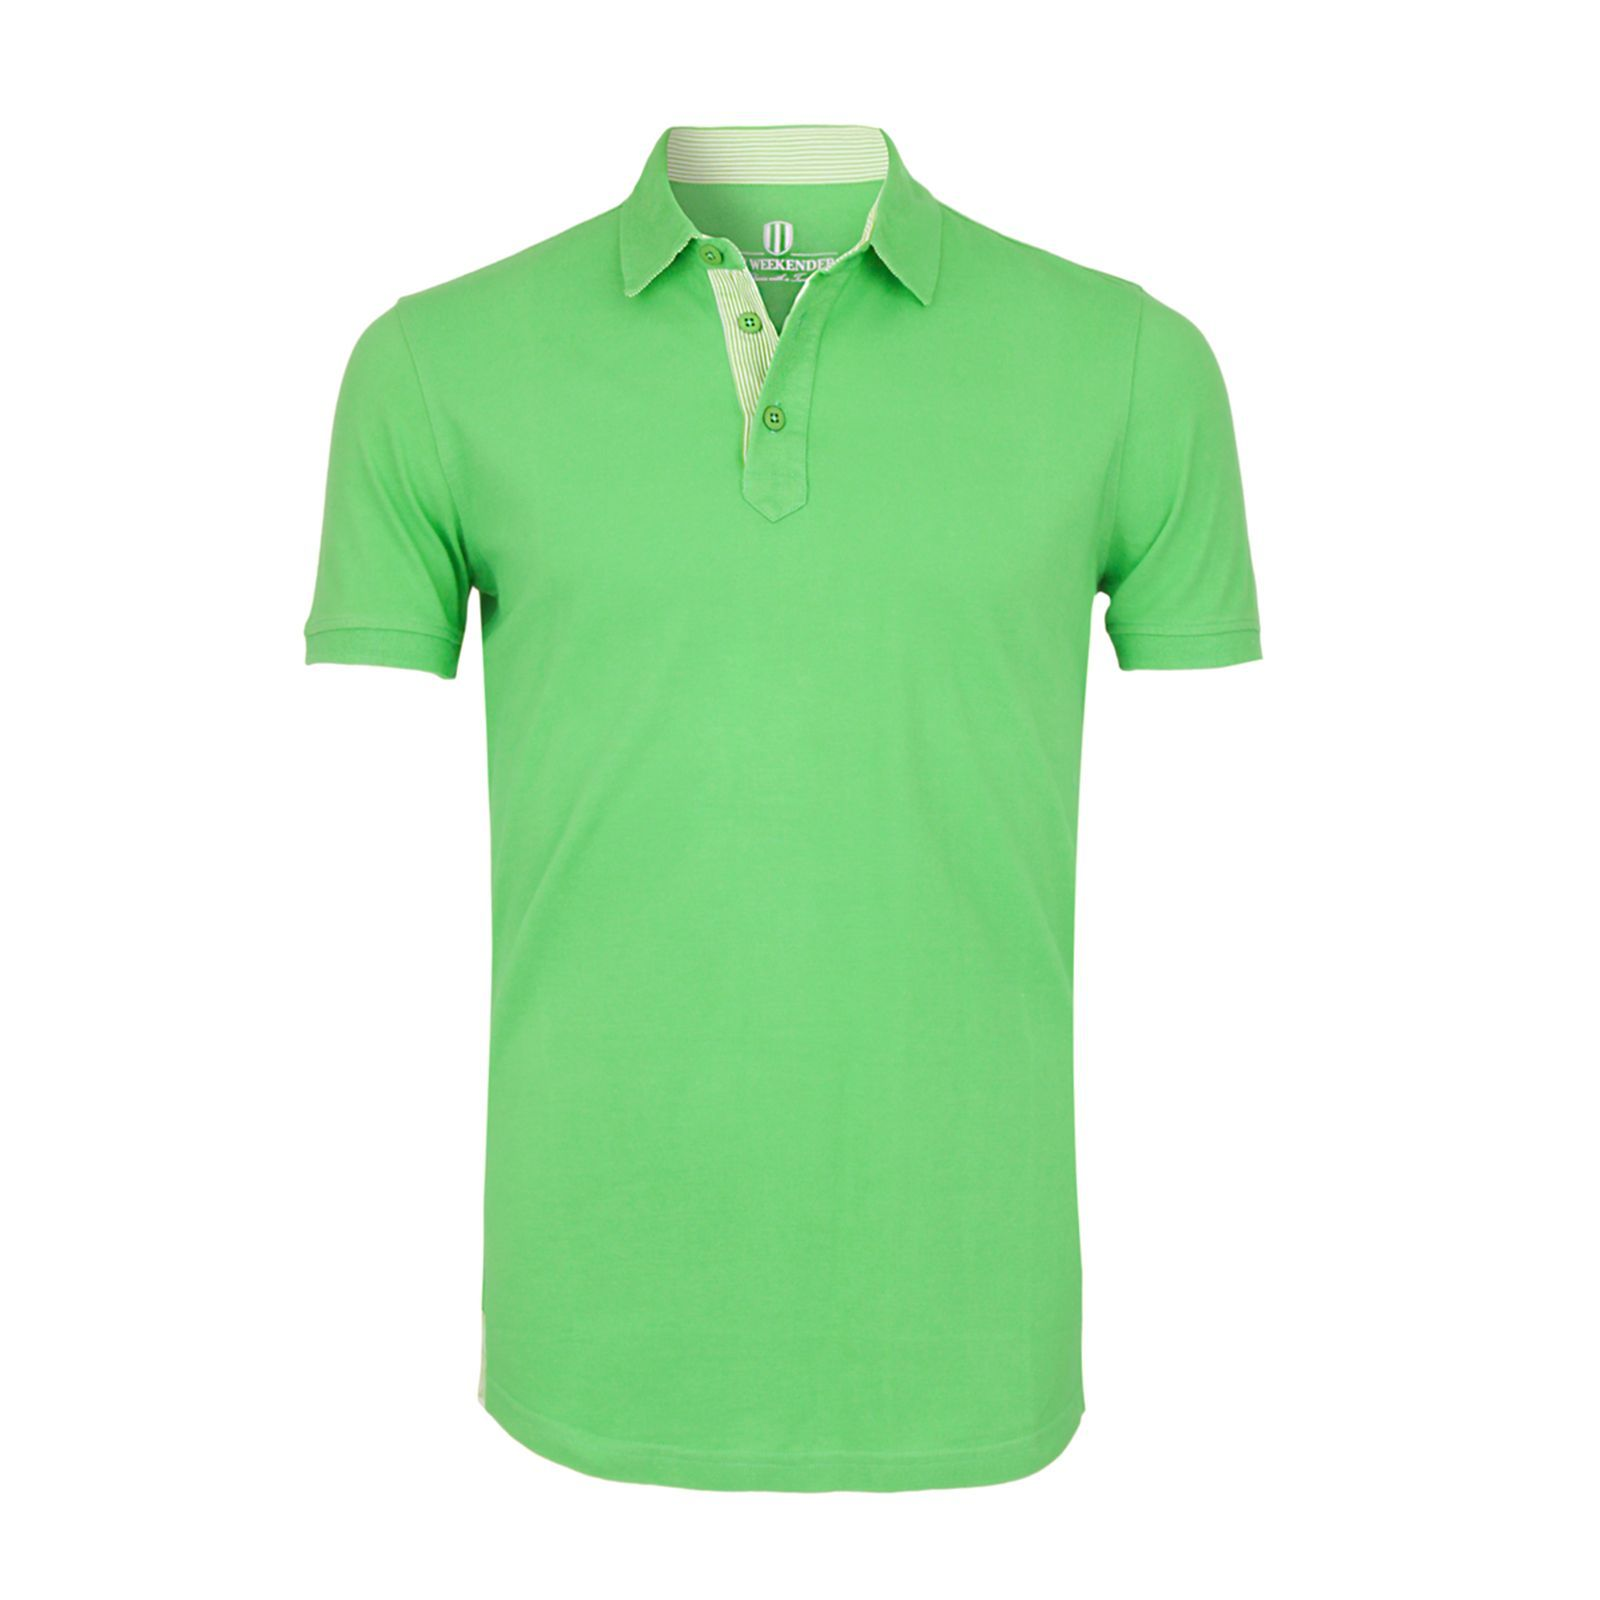 Weekenders Clair Vert Polo Polo The Clair The Vert Weekenders ZXwCqCpx4